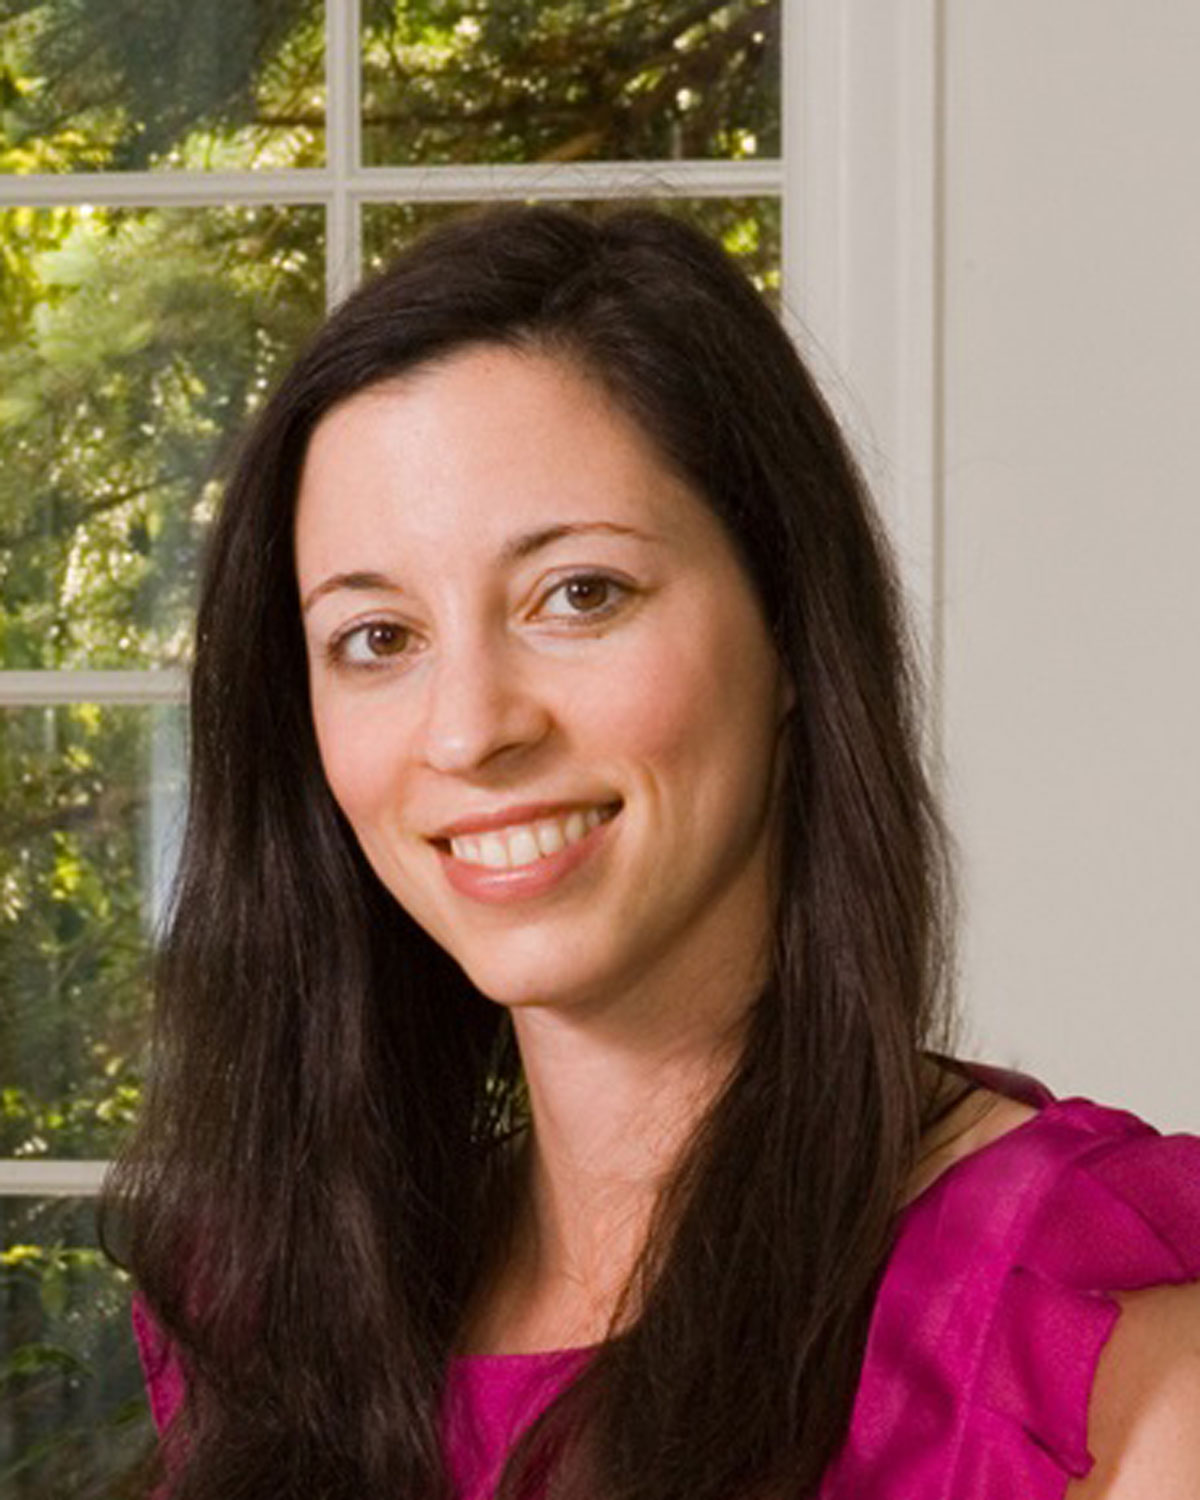 Dr. Michelle R. Lent